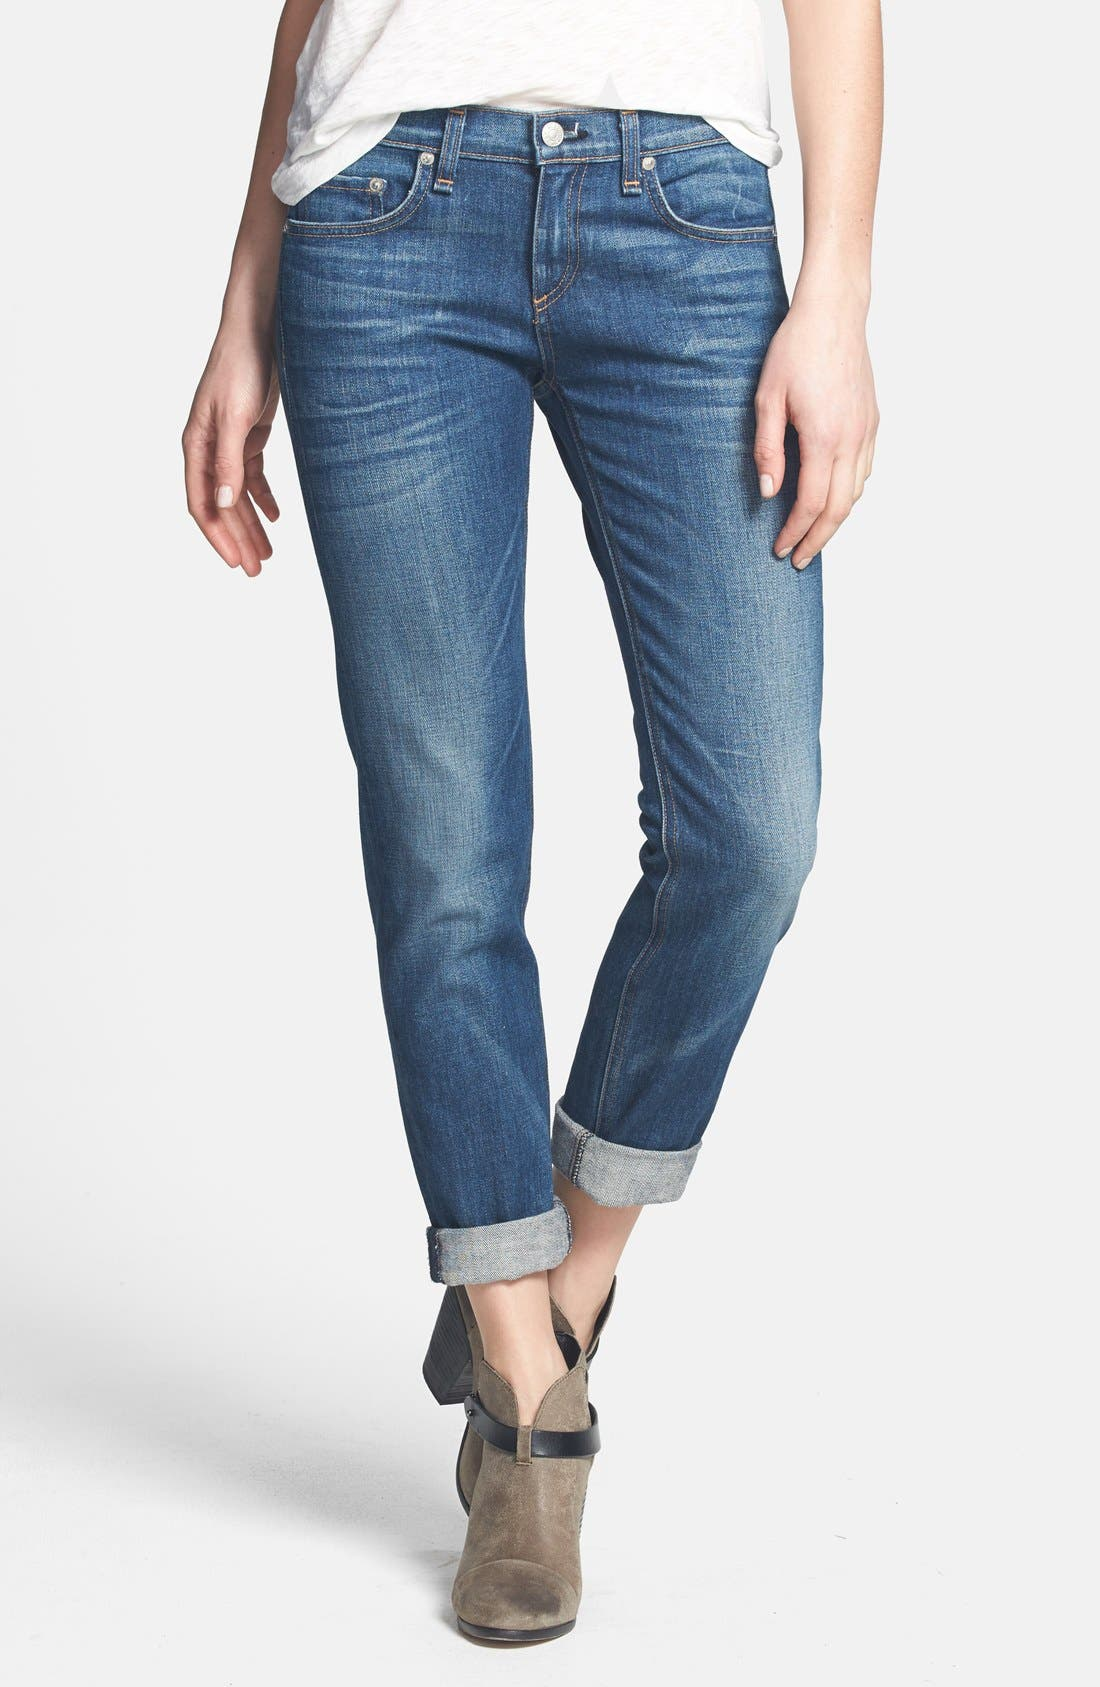 Alternate Image 1 Selected - rag & bone/JEAN 'The Dre' Slim Fit Boyfriend Jeans (Bradford)